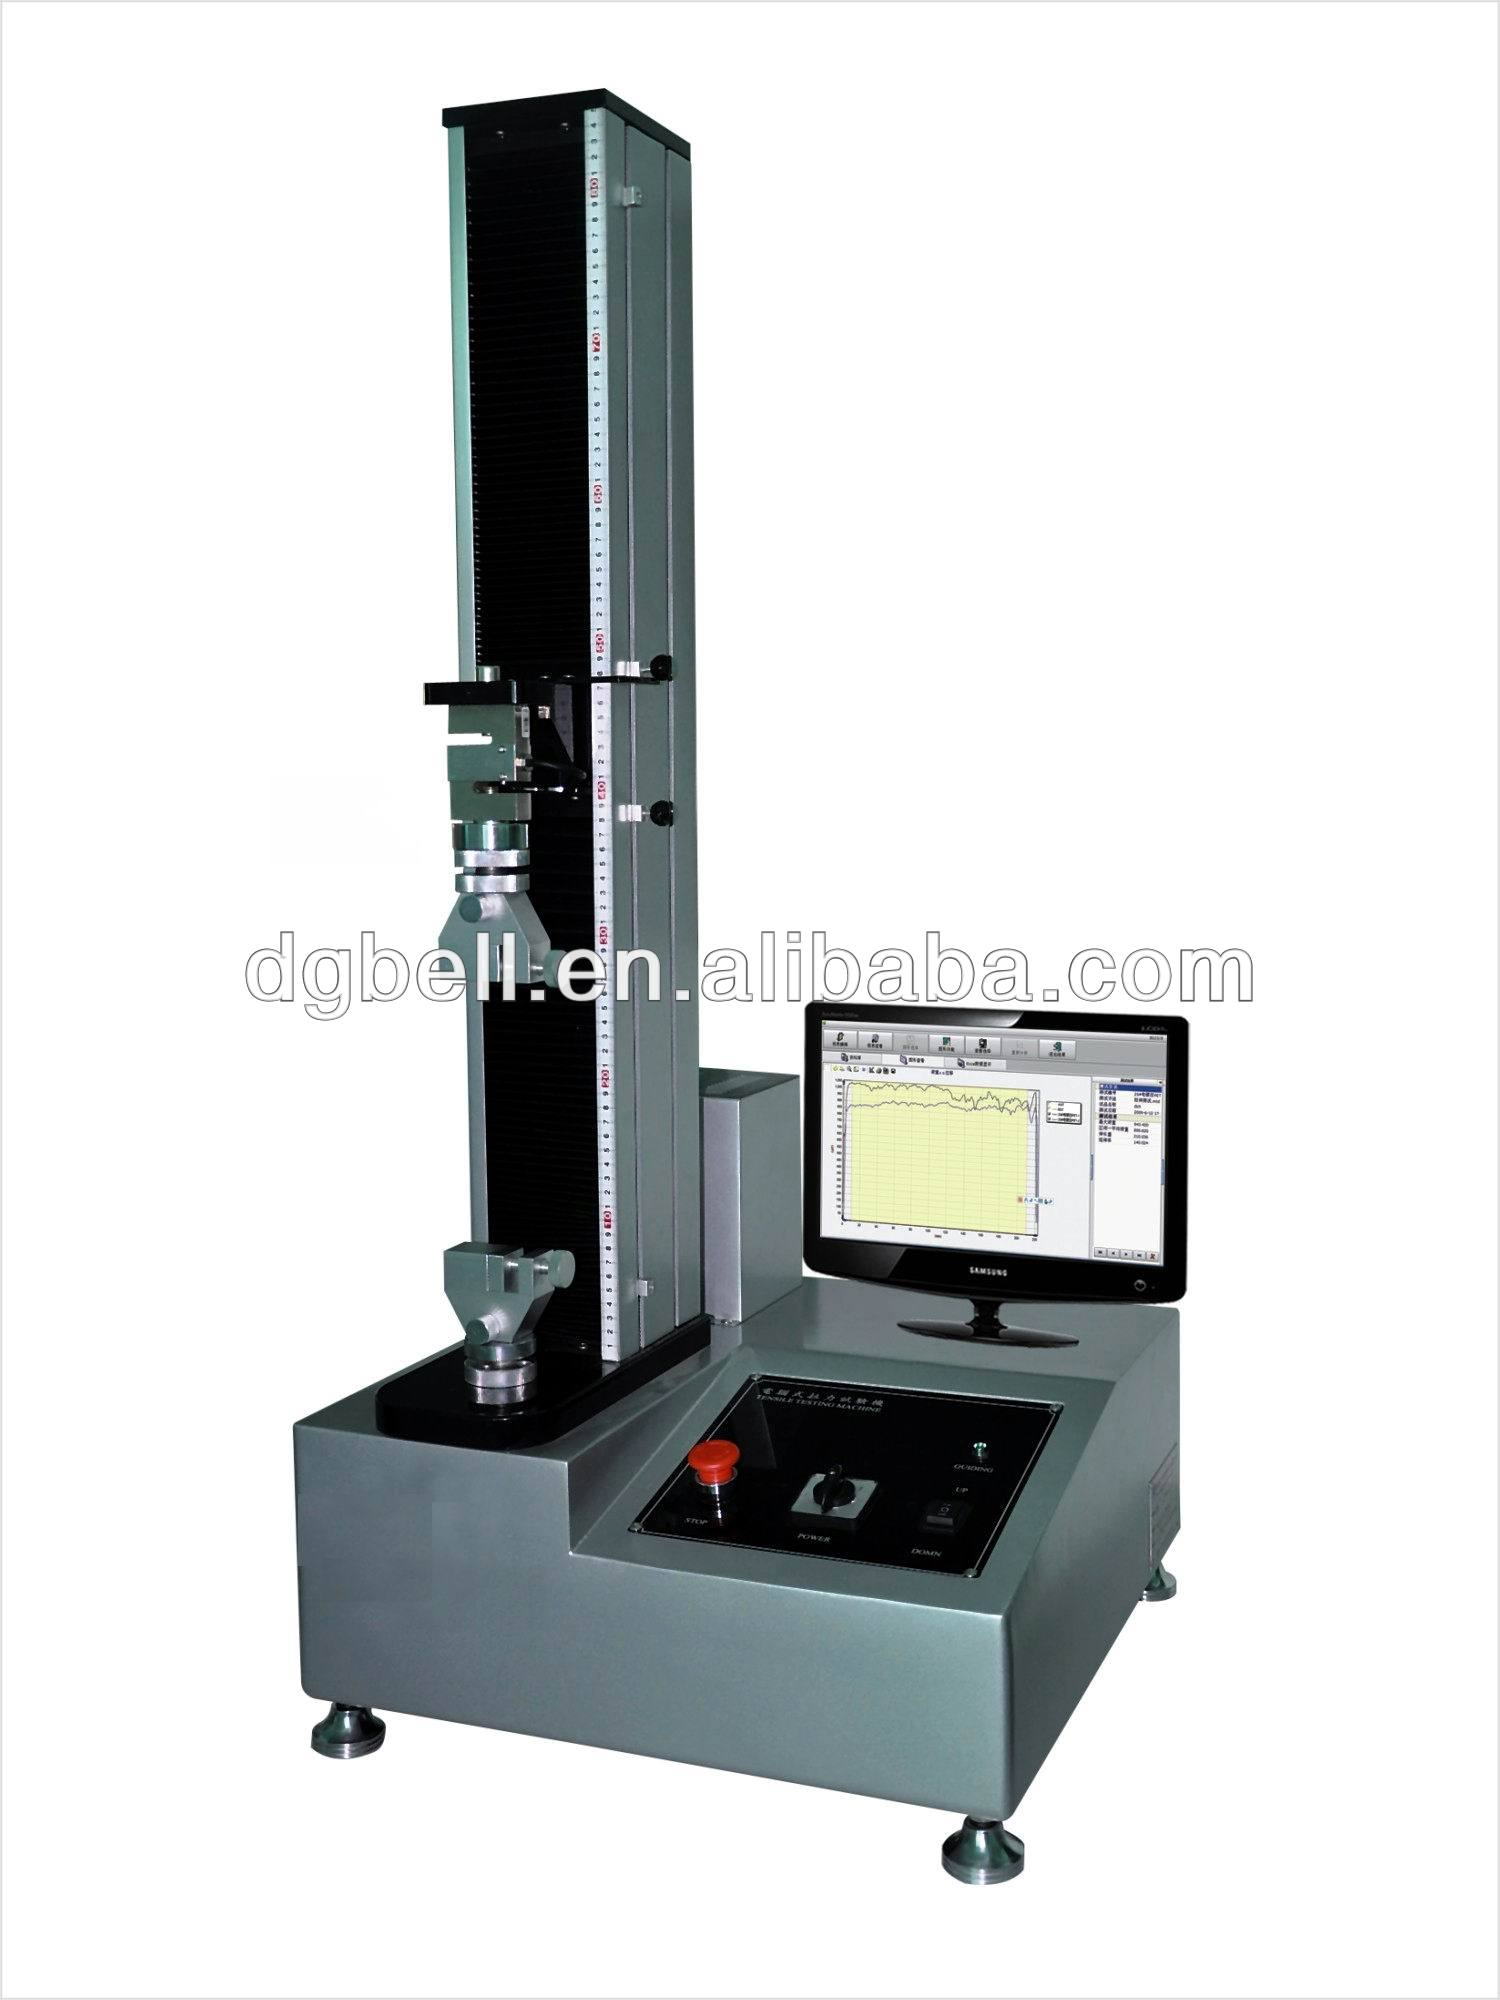 Programmable computer controlled plastic film tensile strength tester made in China